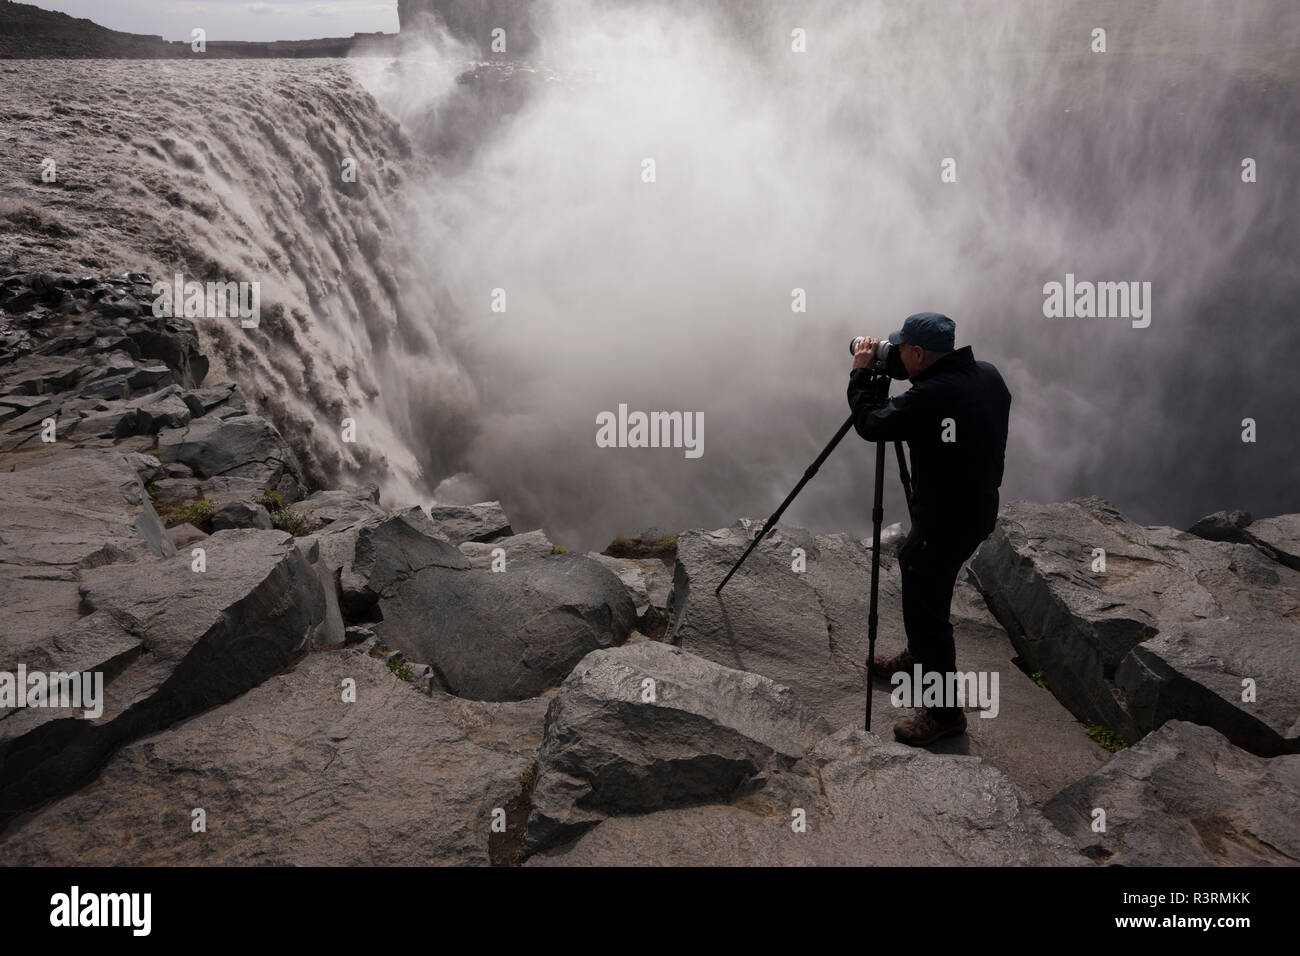 Art Wolfe on location, Dettifoss, Iceland - Stock Image